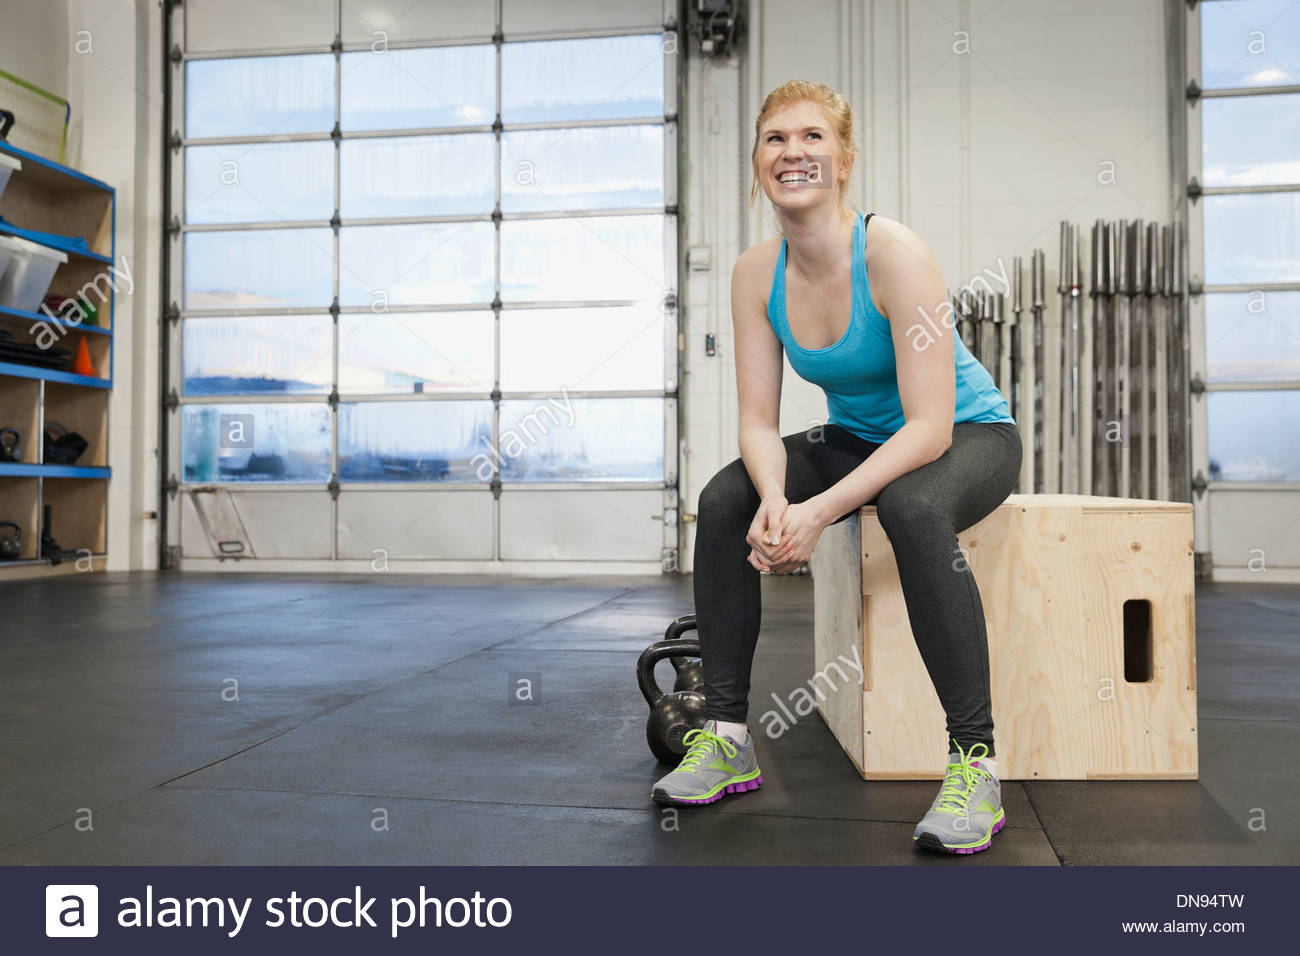 Woman sitting on box in gym - Stock Image